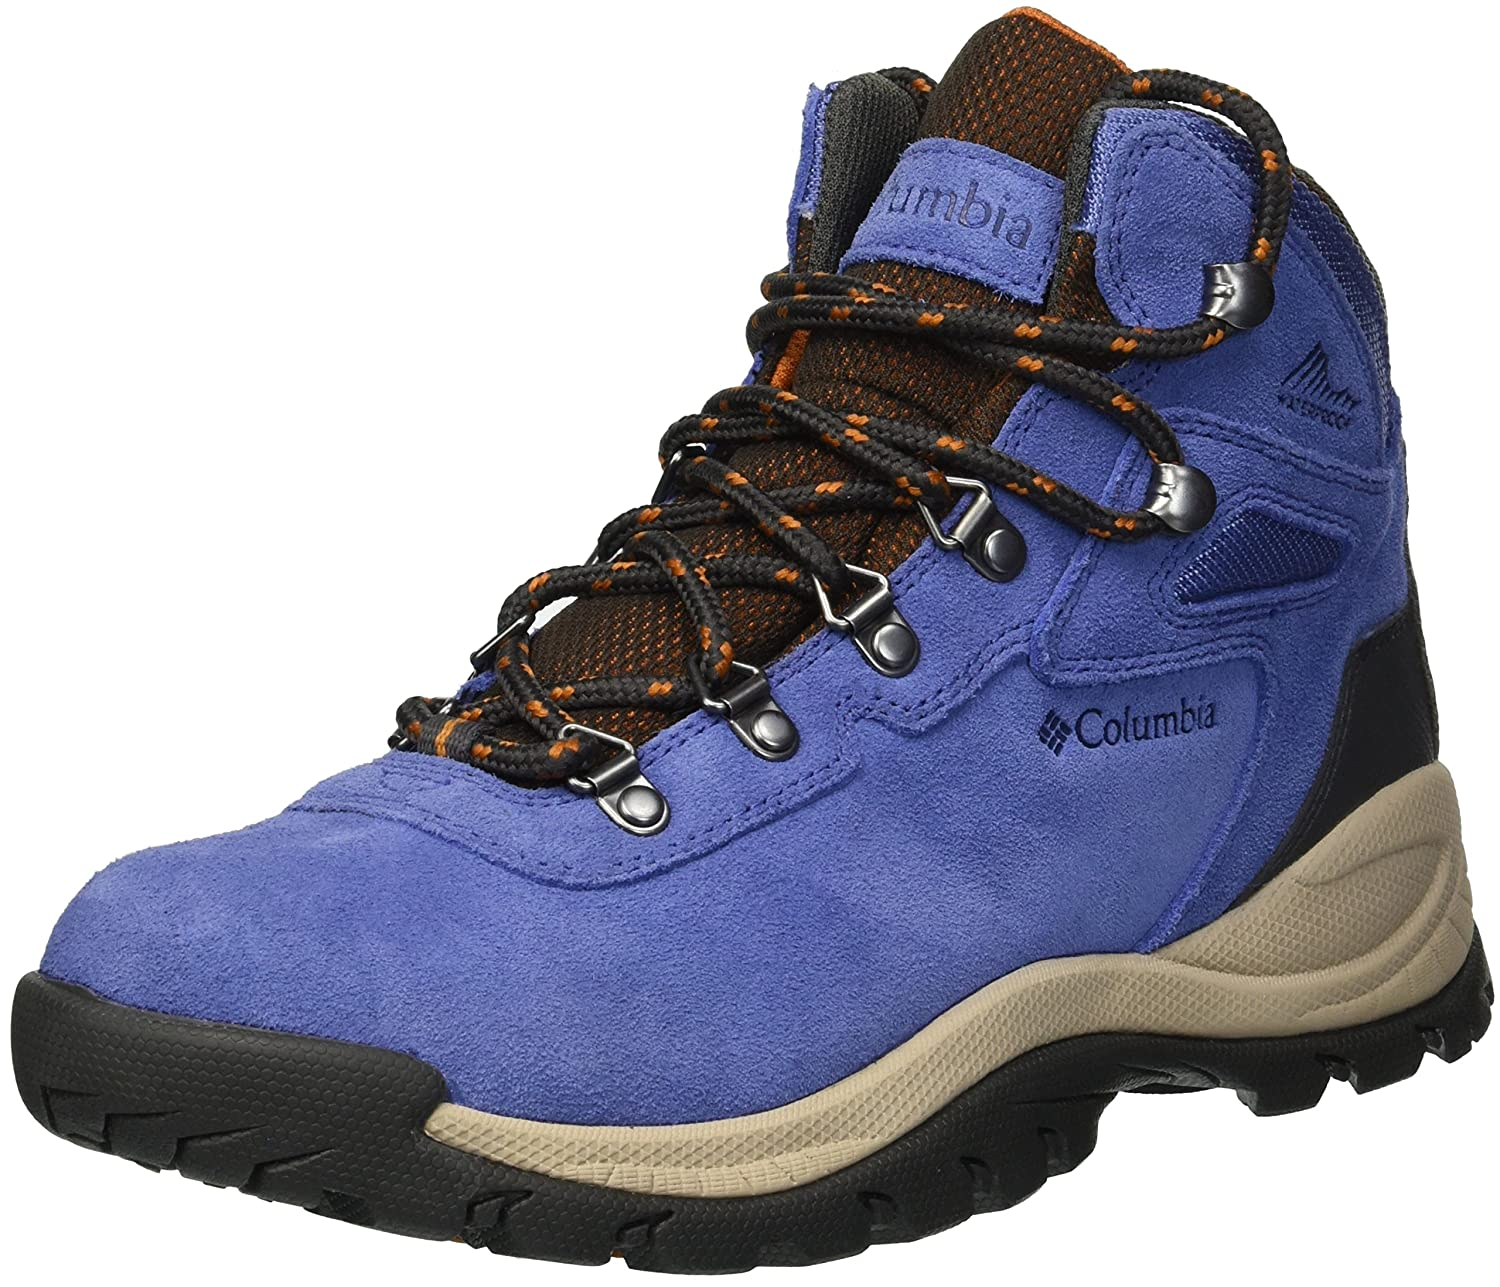 Columbia Women's Newton Ridge Plus Waterproof Amped Wide Hiking Boot B0787HGWPY 5.5 W US|Eve, Bright Copper